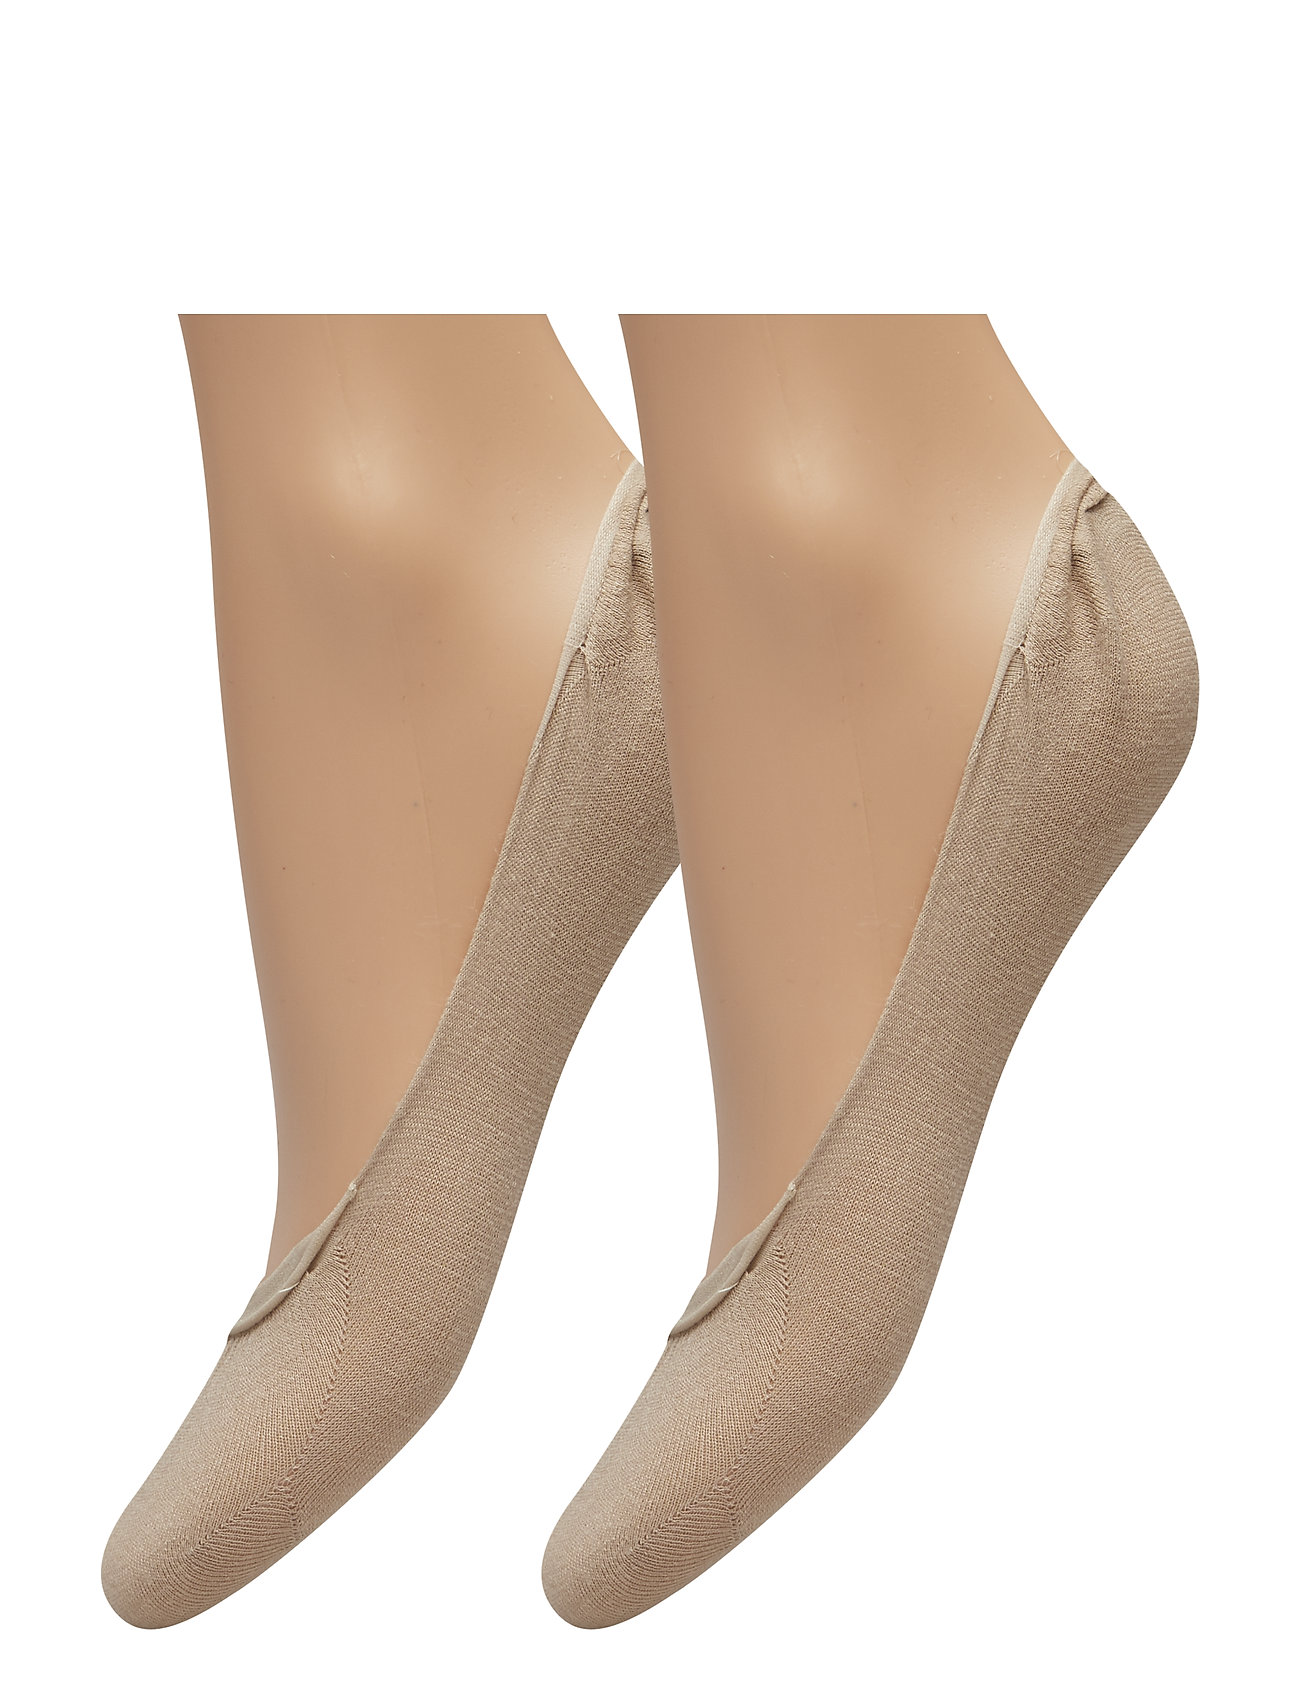 Tommy Hilfiger TH WOMEN BALLERINA STEP 2P - NOMAD